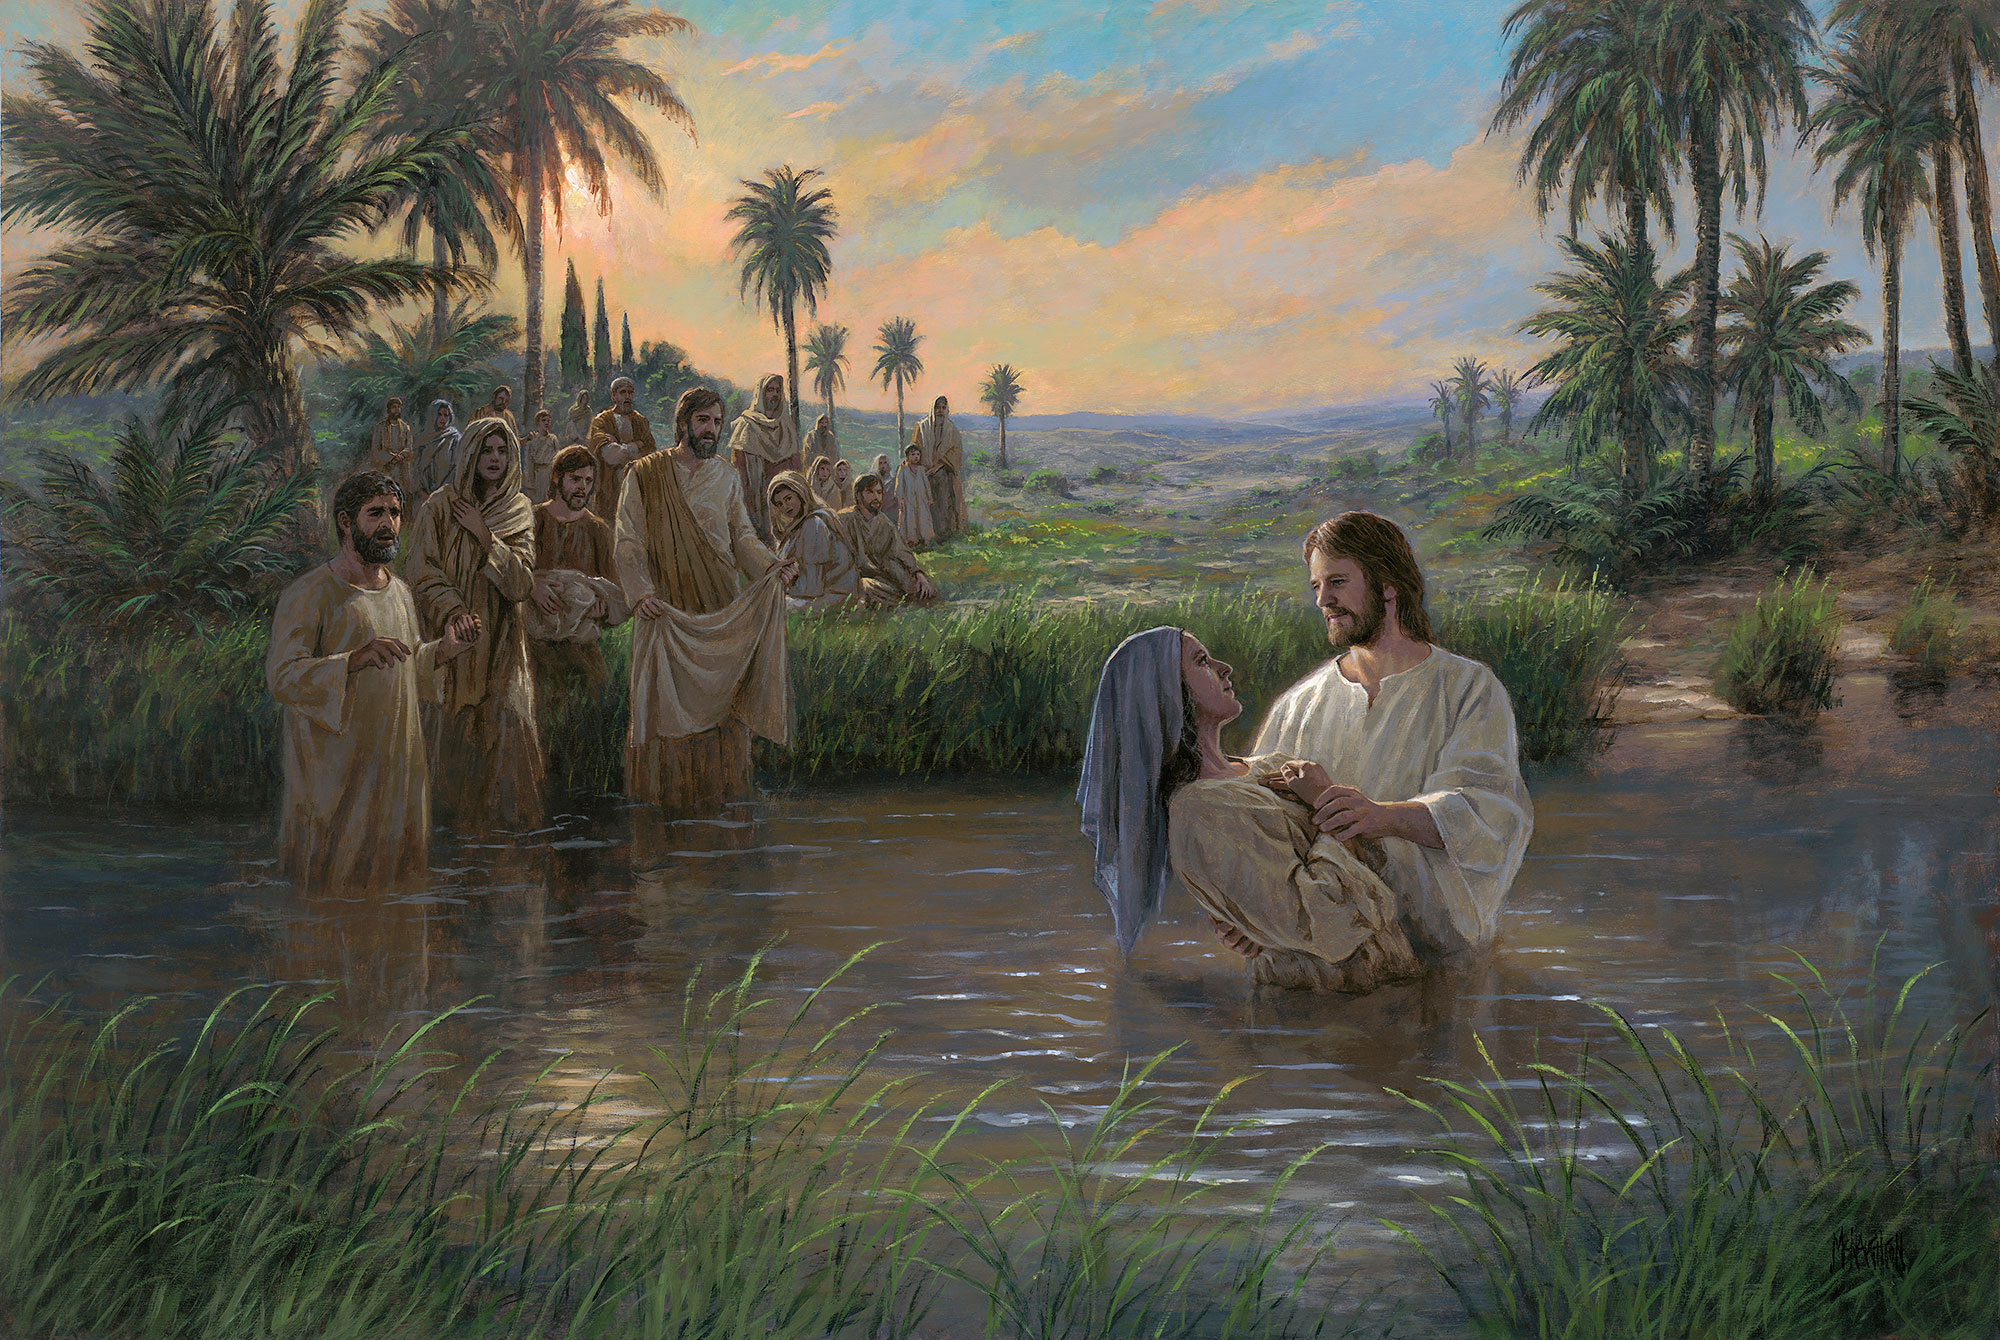 Why Did Joseph and Oliver Seek Authority to Baptize ...